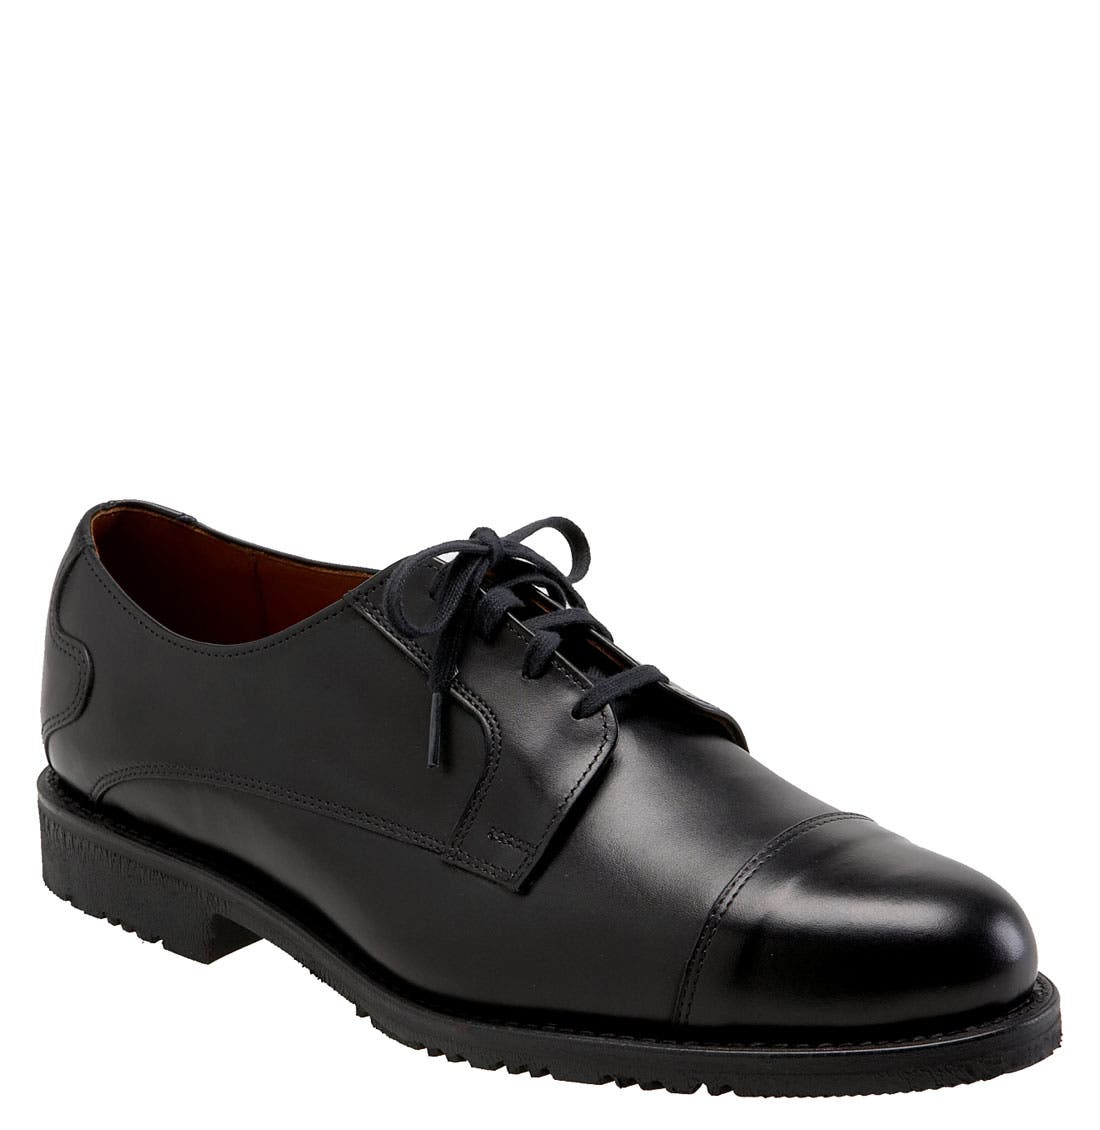 ALLEN EDMONDS 'Memphis' Cap Toe Oxford, Main, color, 001